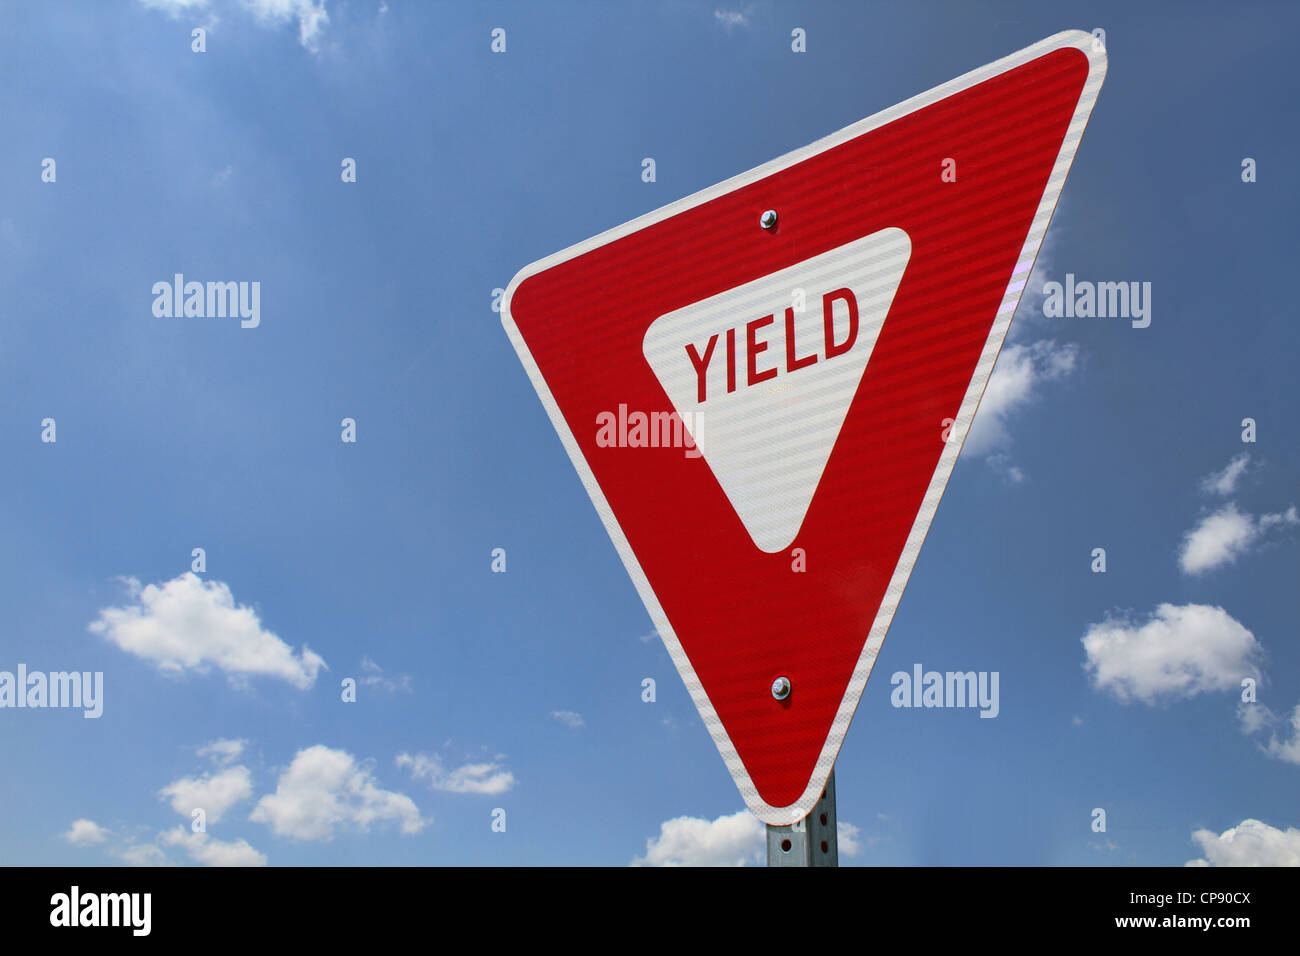 Yield Sign - Stock Image